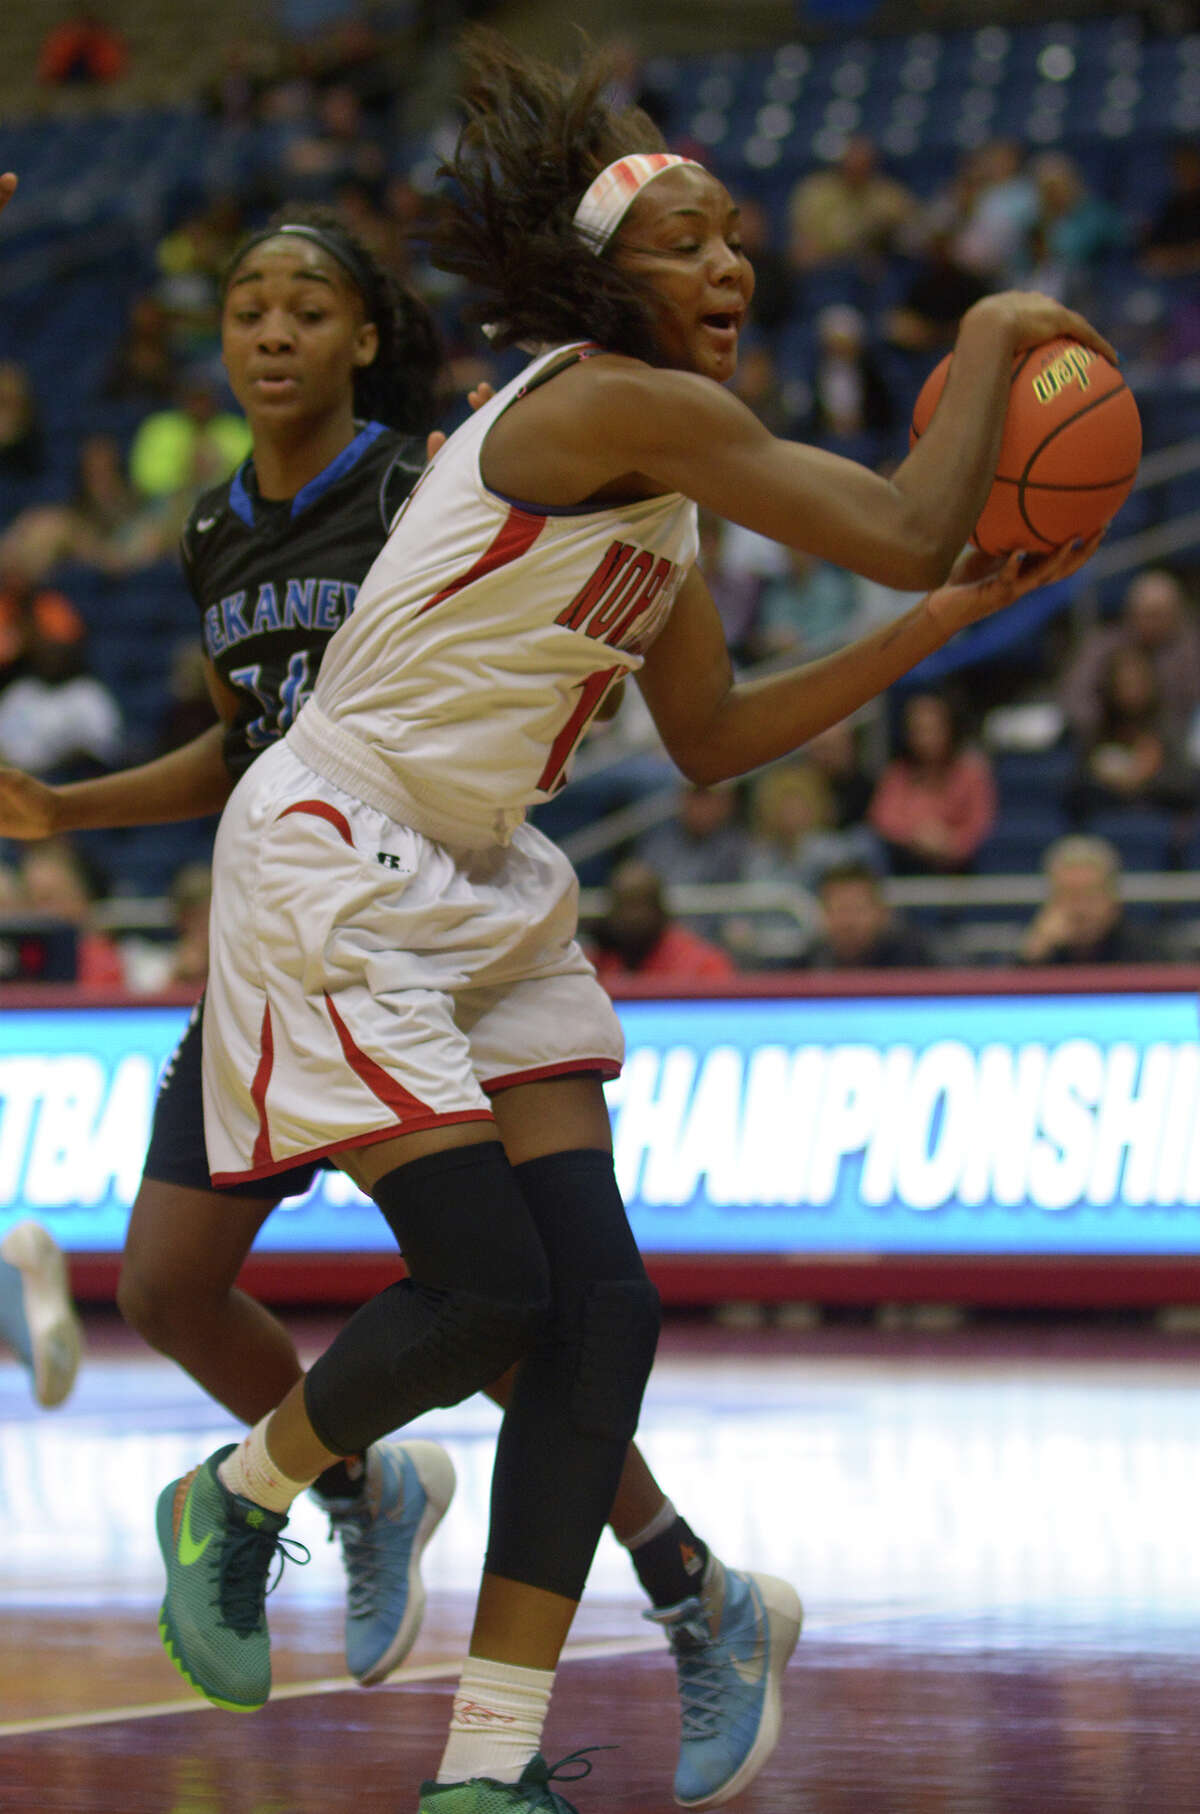 North Shore senior forward Alyssa Okoene (12) pulls a rebound down in front of Dekaney junior guard Keishawna Scott during 1st quarter action of their Class 6A girls basketball state semifinal at the Alamodome in San Antonio on Friday, Mar. 4, 2016. (Photo by Jerry Baker/Freelance)